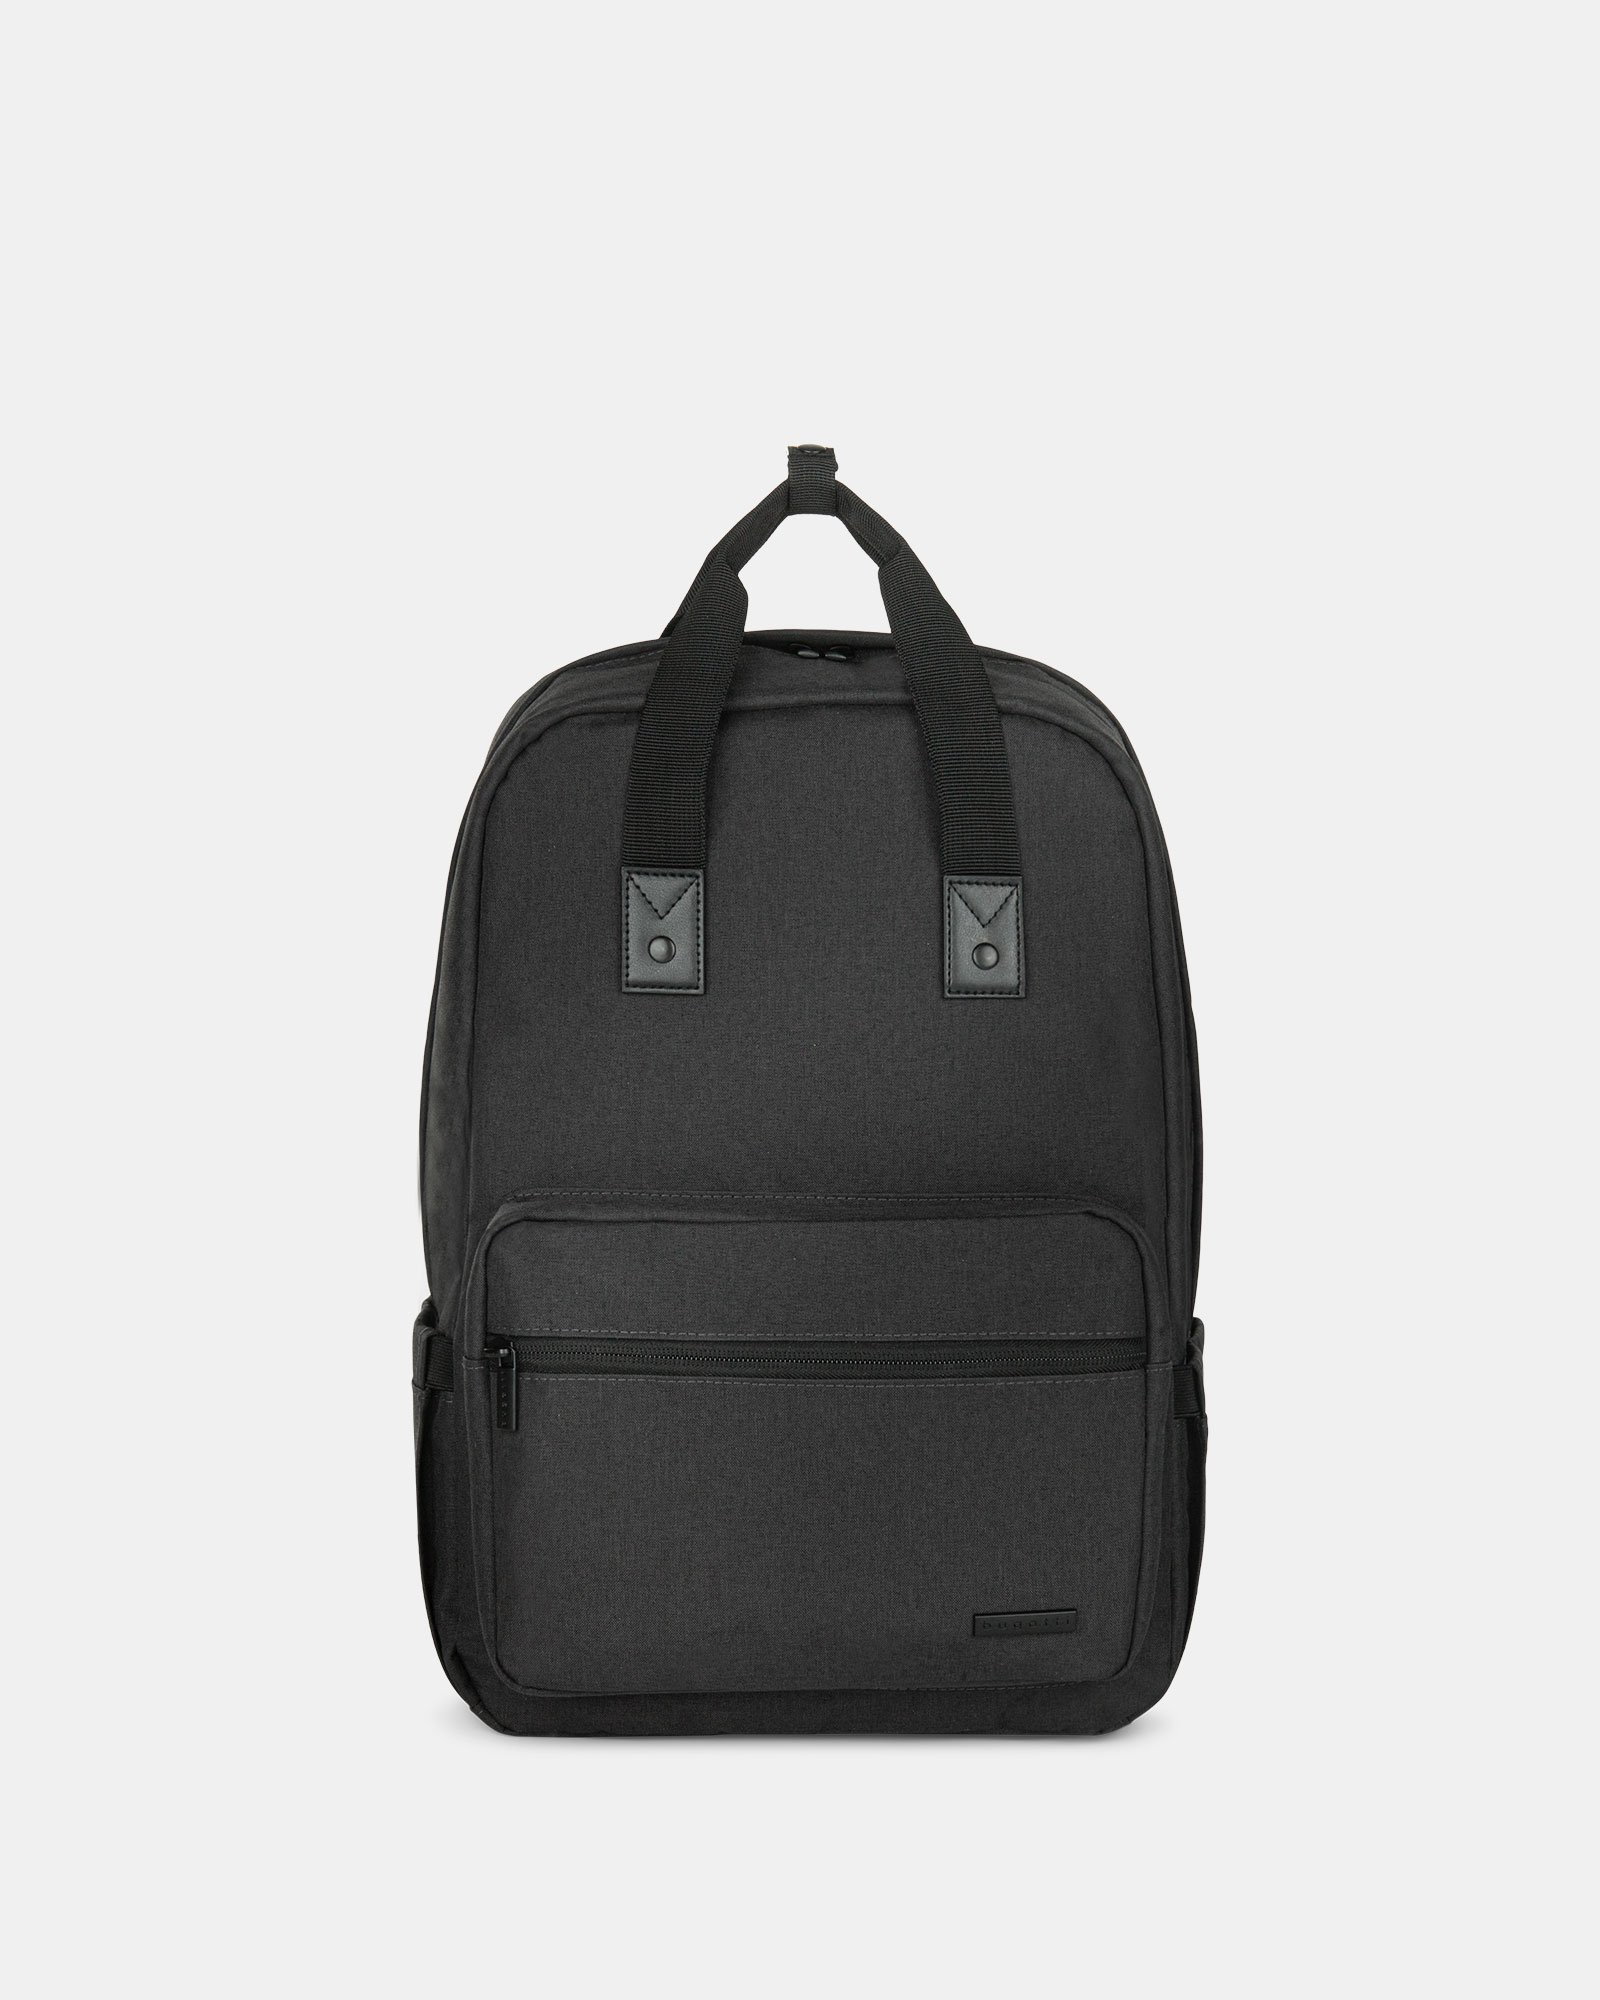 "Traveller - Backpack for 15.6"" Laptop with Exterior bottle pocket - Charcoal - Bugatti - Zoom"